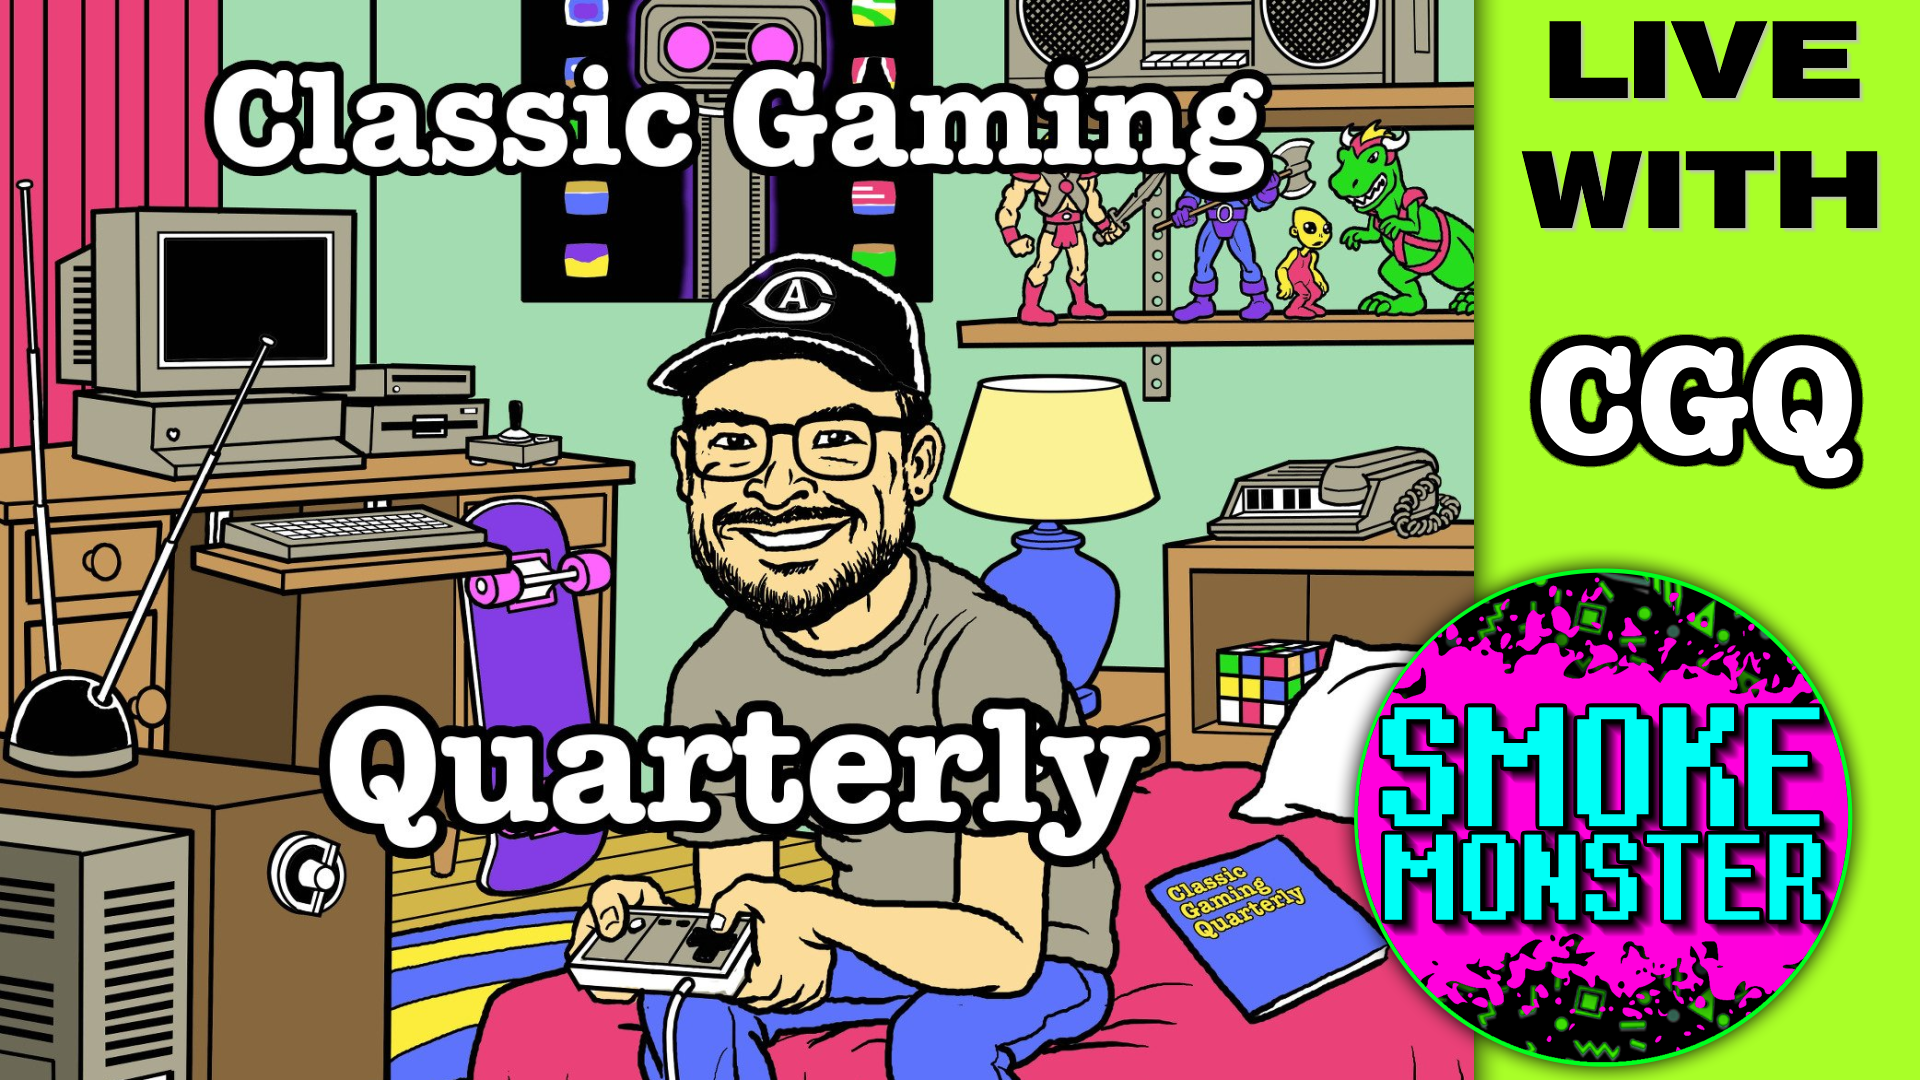 The Sega Genesis in 1990 by Classic Gaming Quarterly and SmokeMonster CGQ interview